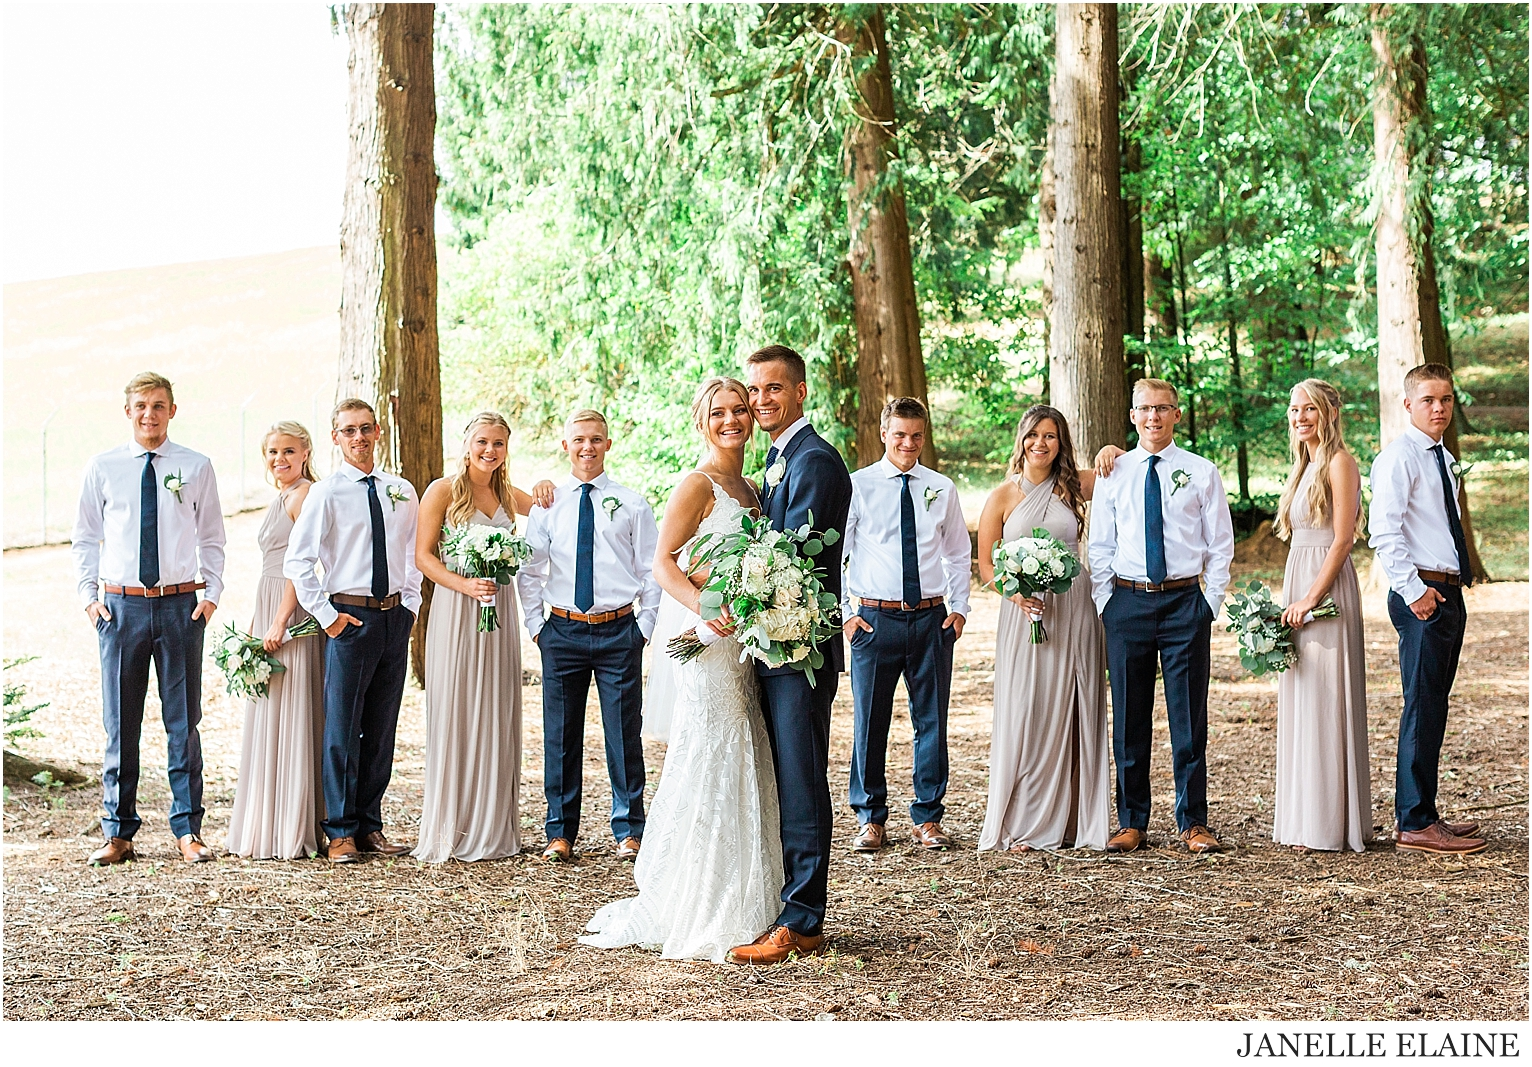 Tricia and Nathan Goddard Wedding-Wedding Party-Janelle Elaine Photography-15.jpg